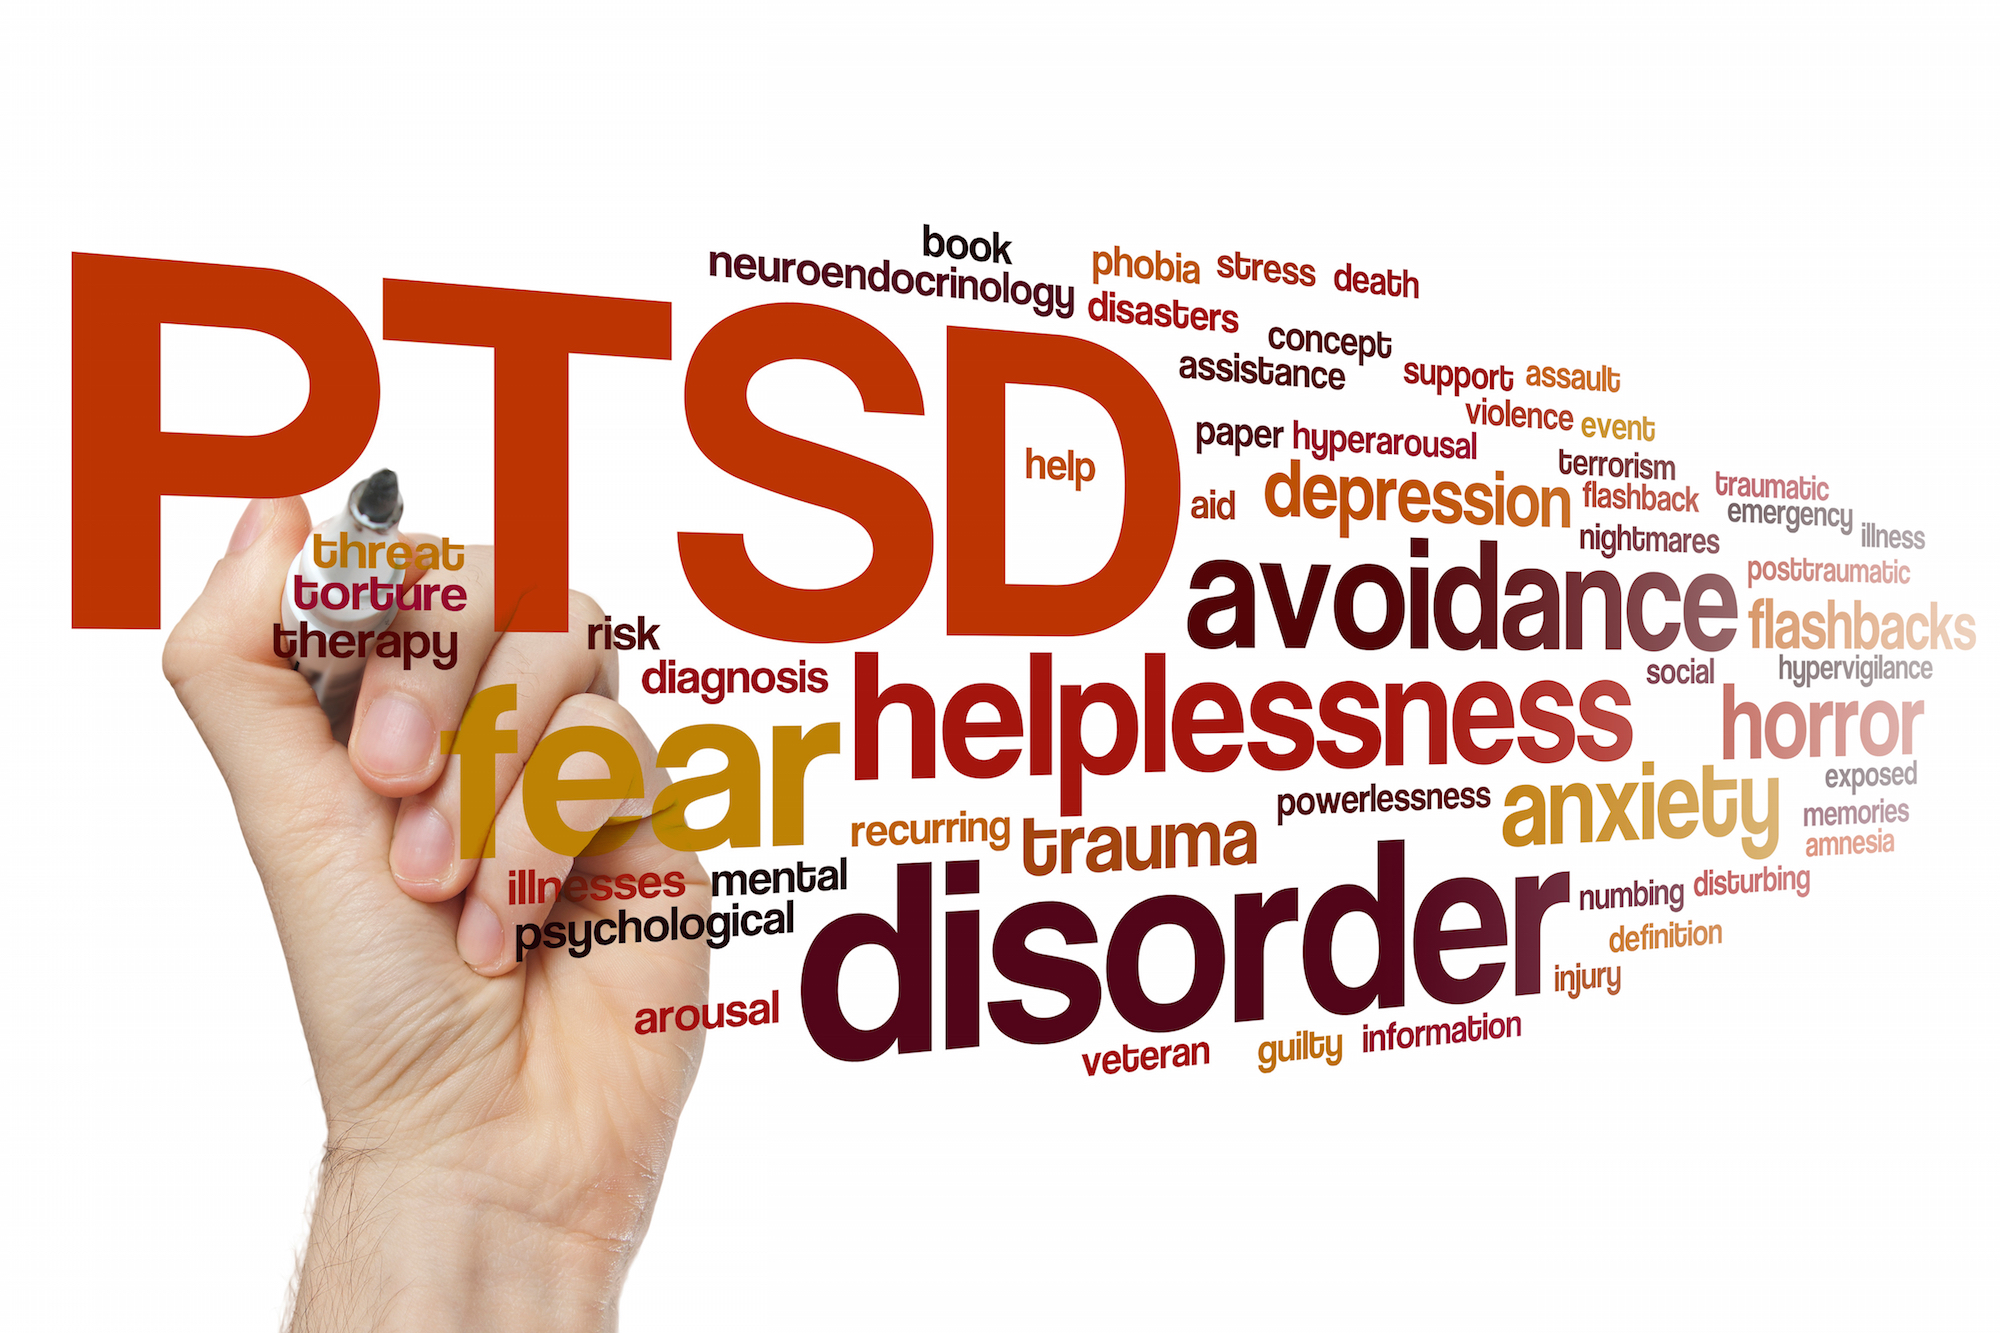 Why And How Childhood Ptsd Is Often Misdiagnosed